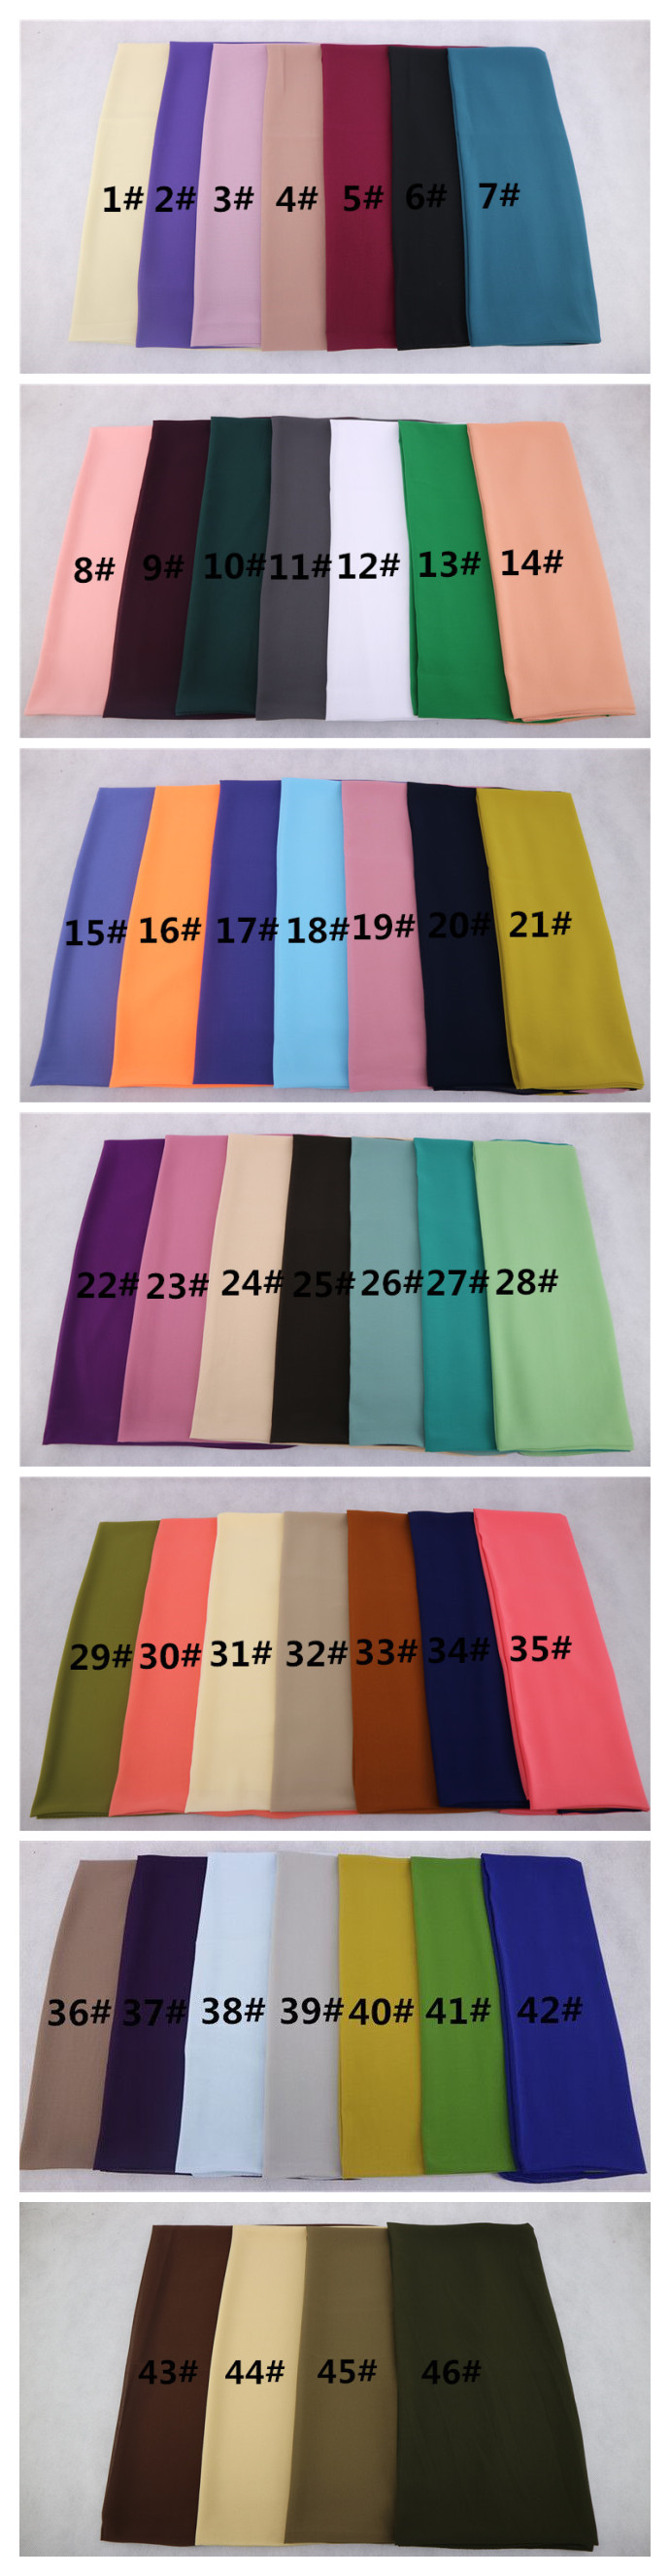 New Arrival Soft Chiffon Hijab Pearl And Chain Scarves Muslim Women Scarf Shawl Wraps Many Color Can Choose